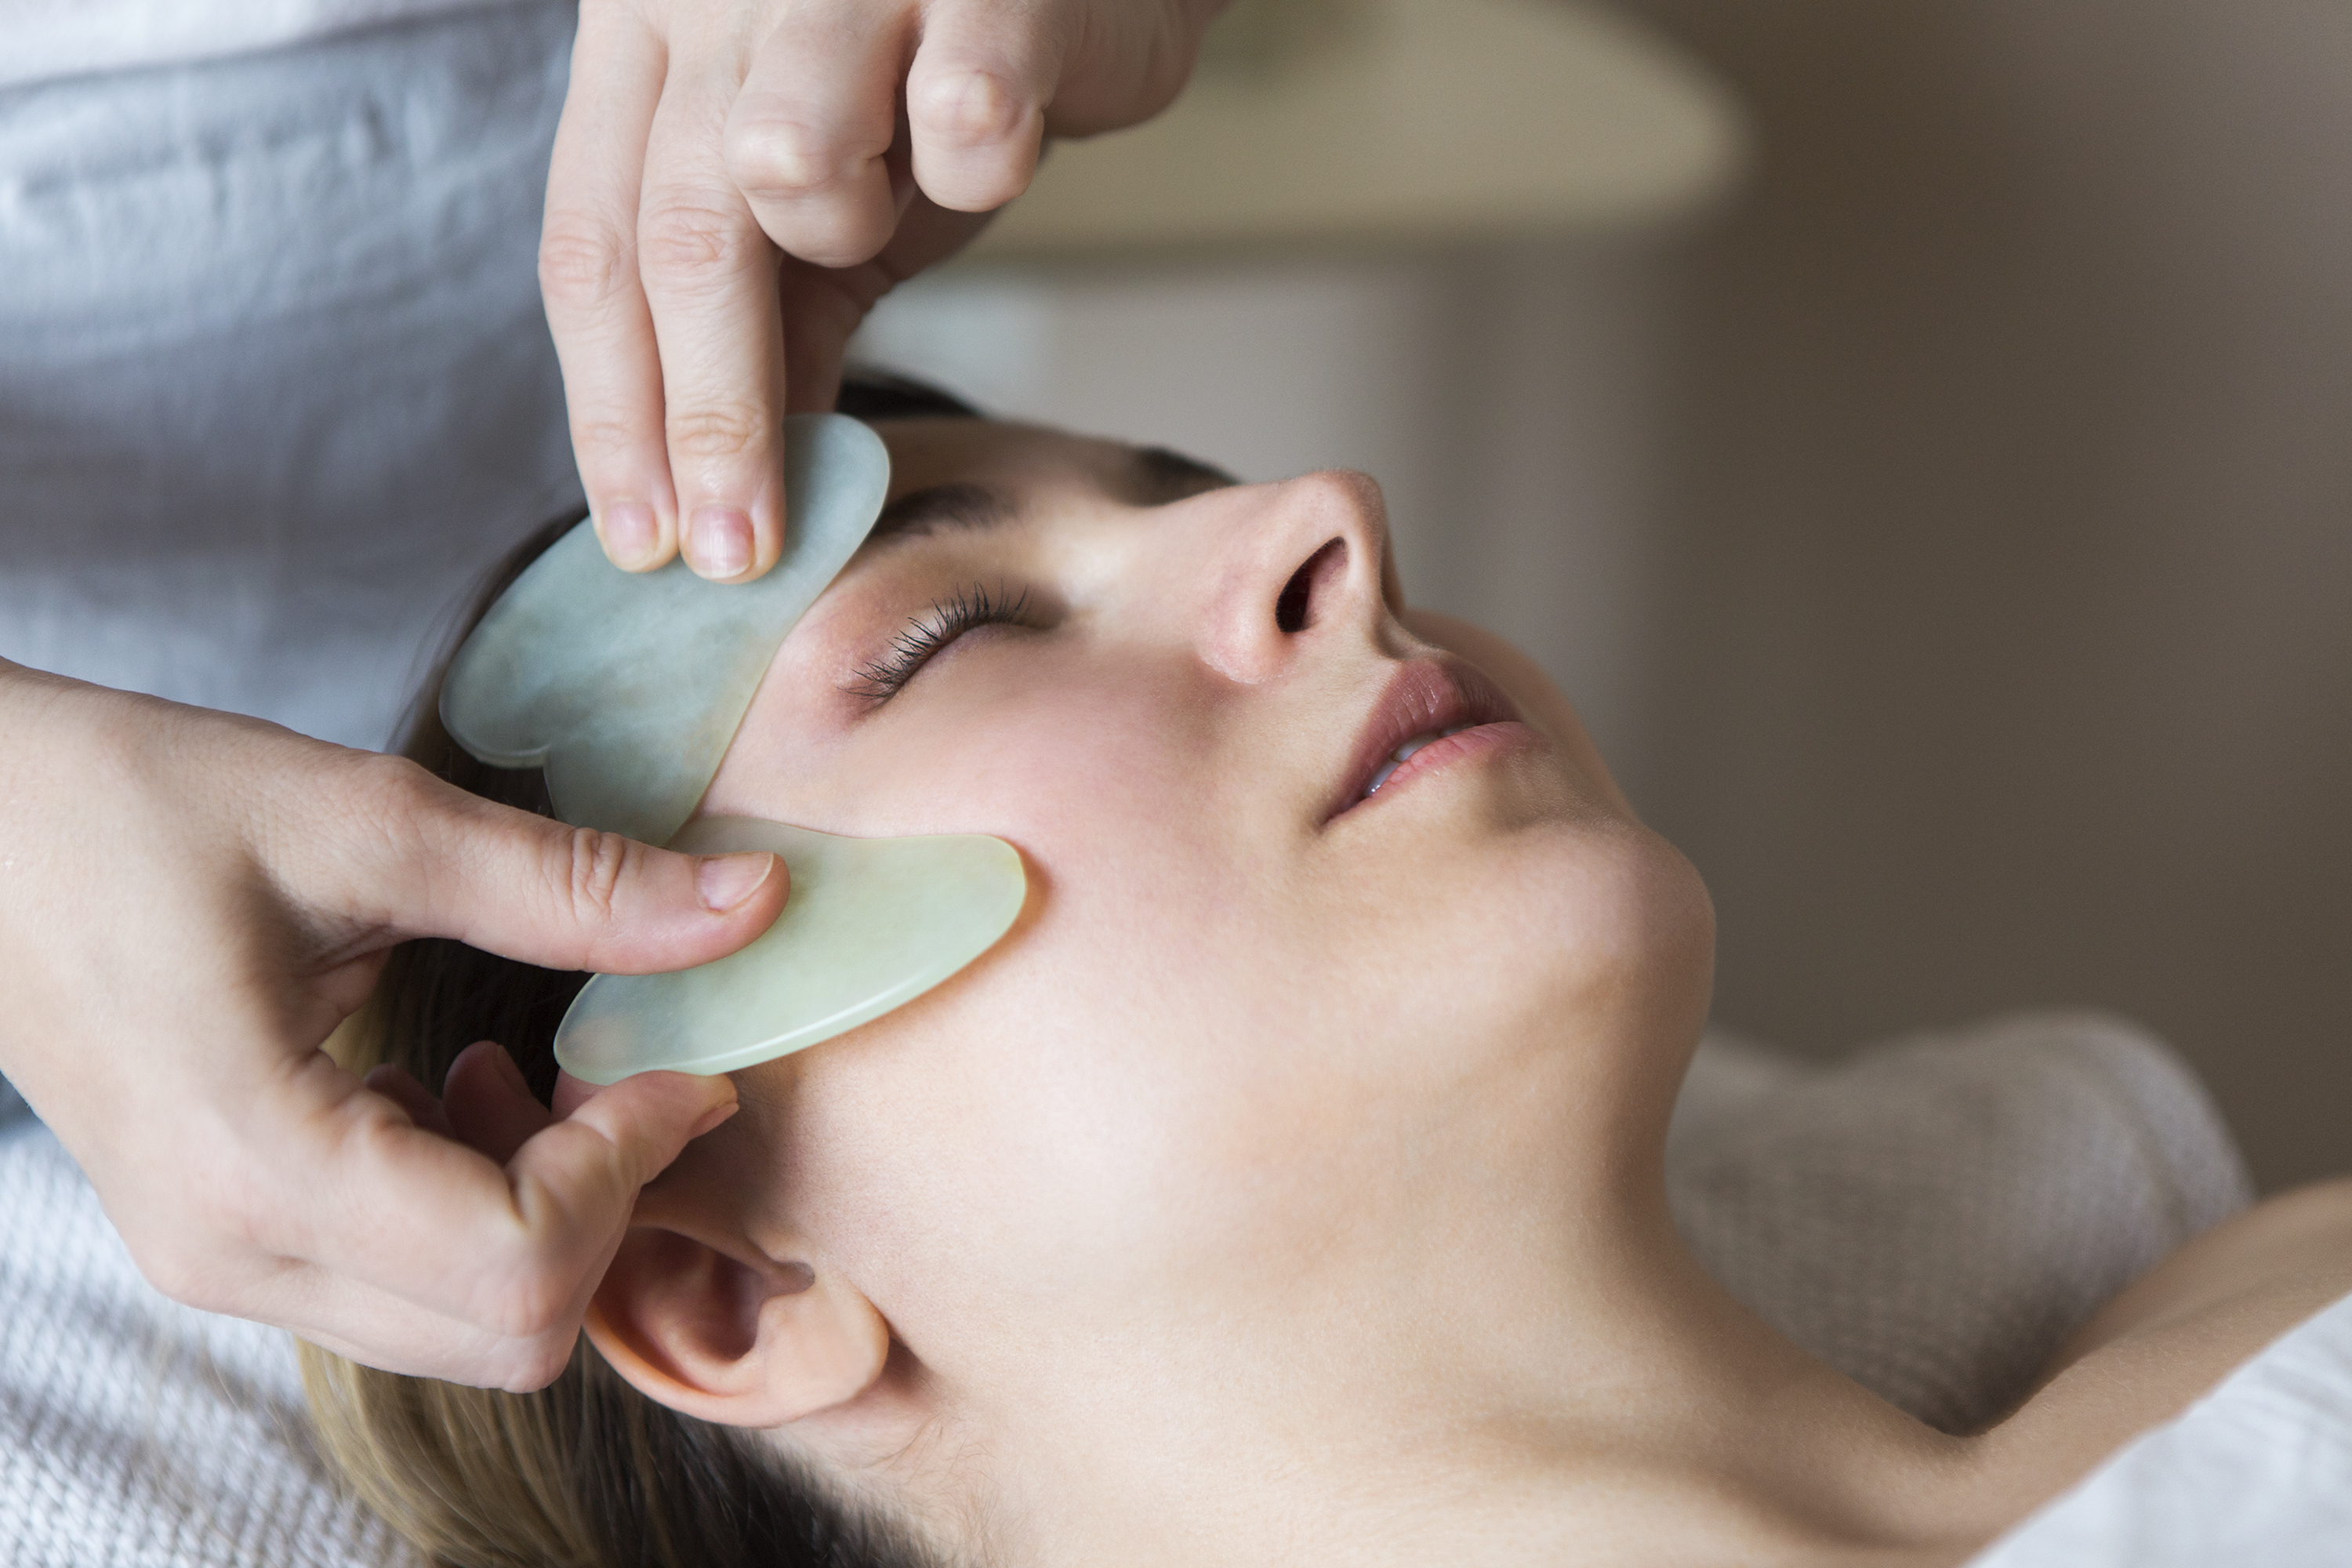 Love Acupuncture's facial acupuncture will help you not only look your best but feel your best